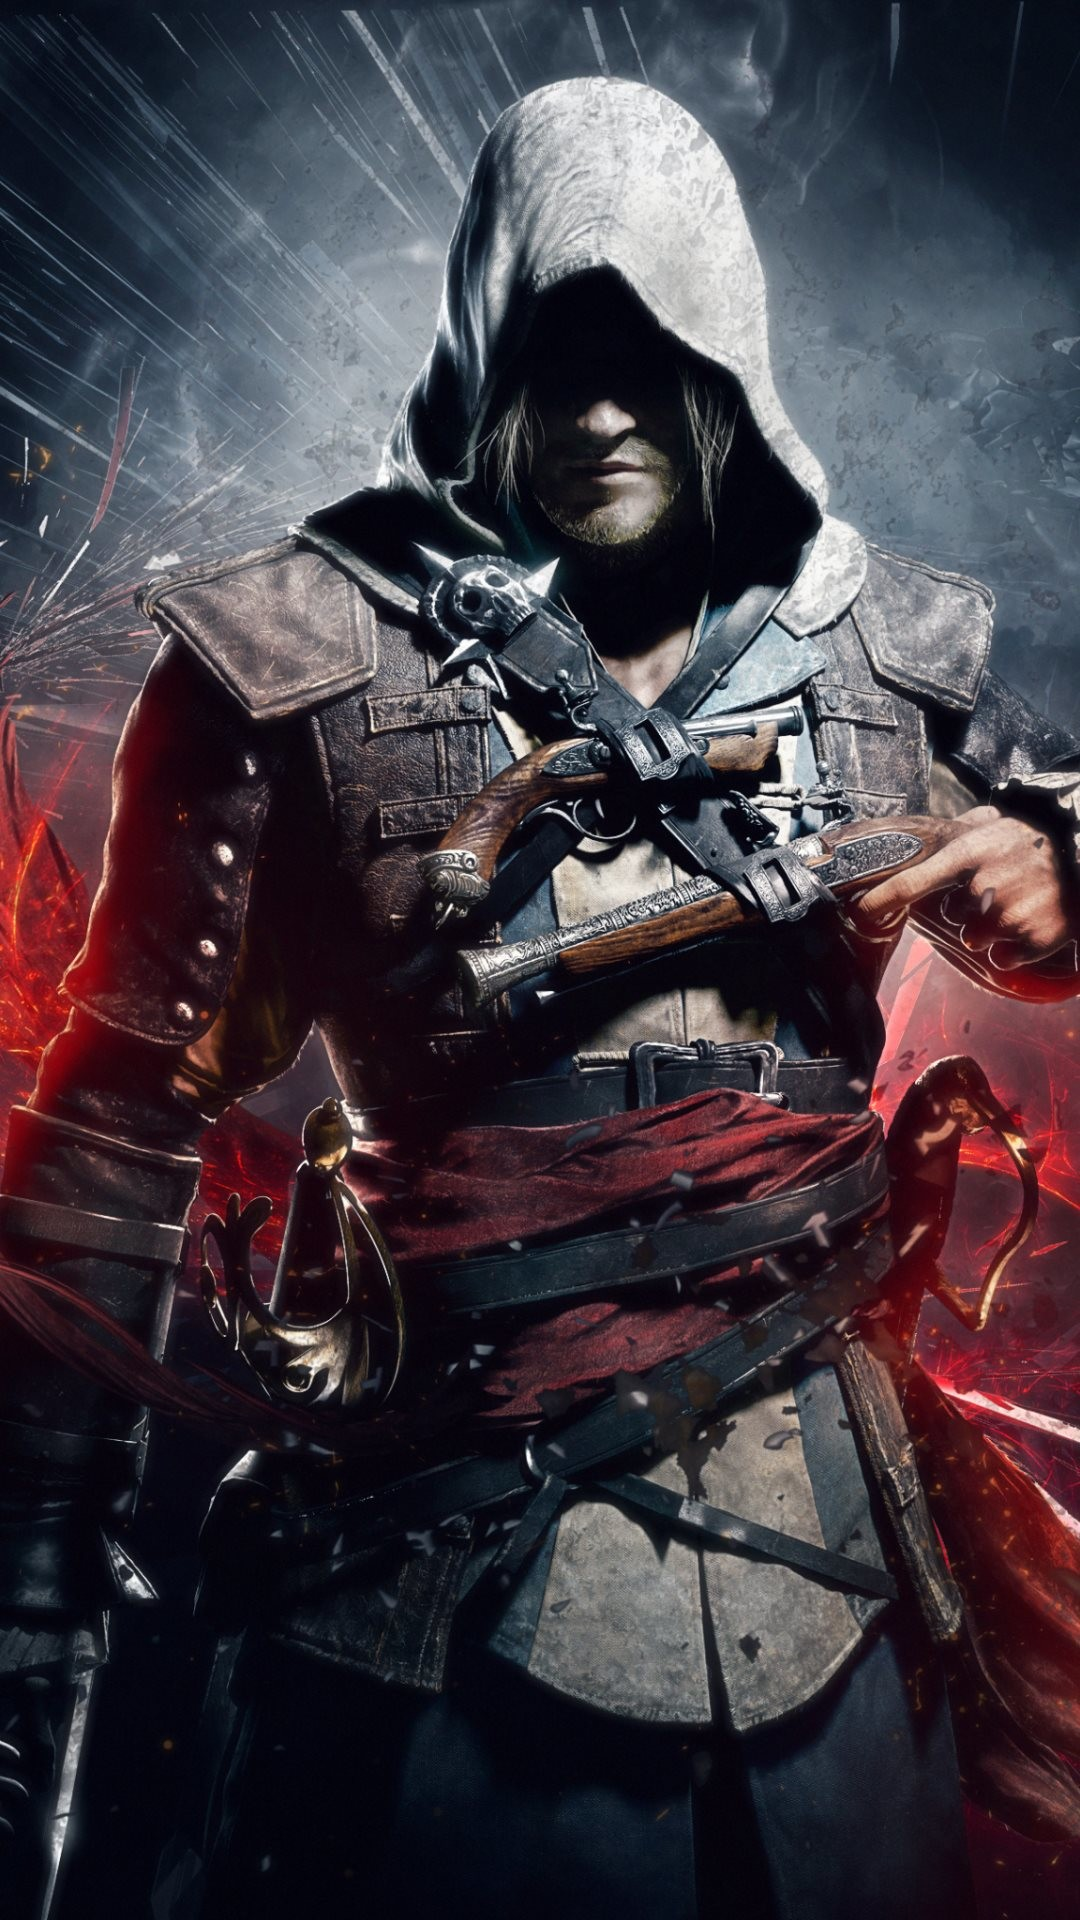 1080x1920 video game iphone wallpapers Assassin's Creed IV Black Flag